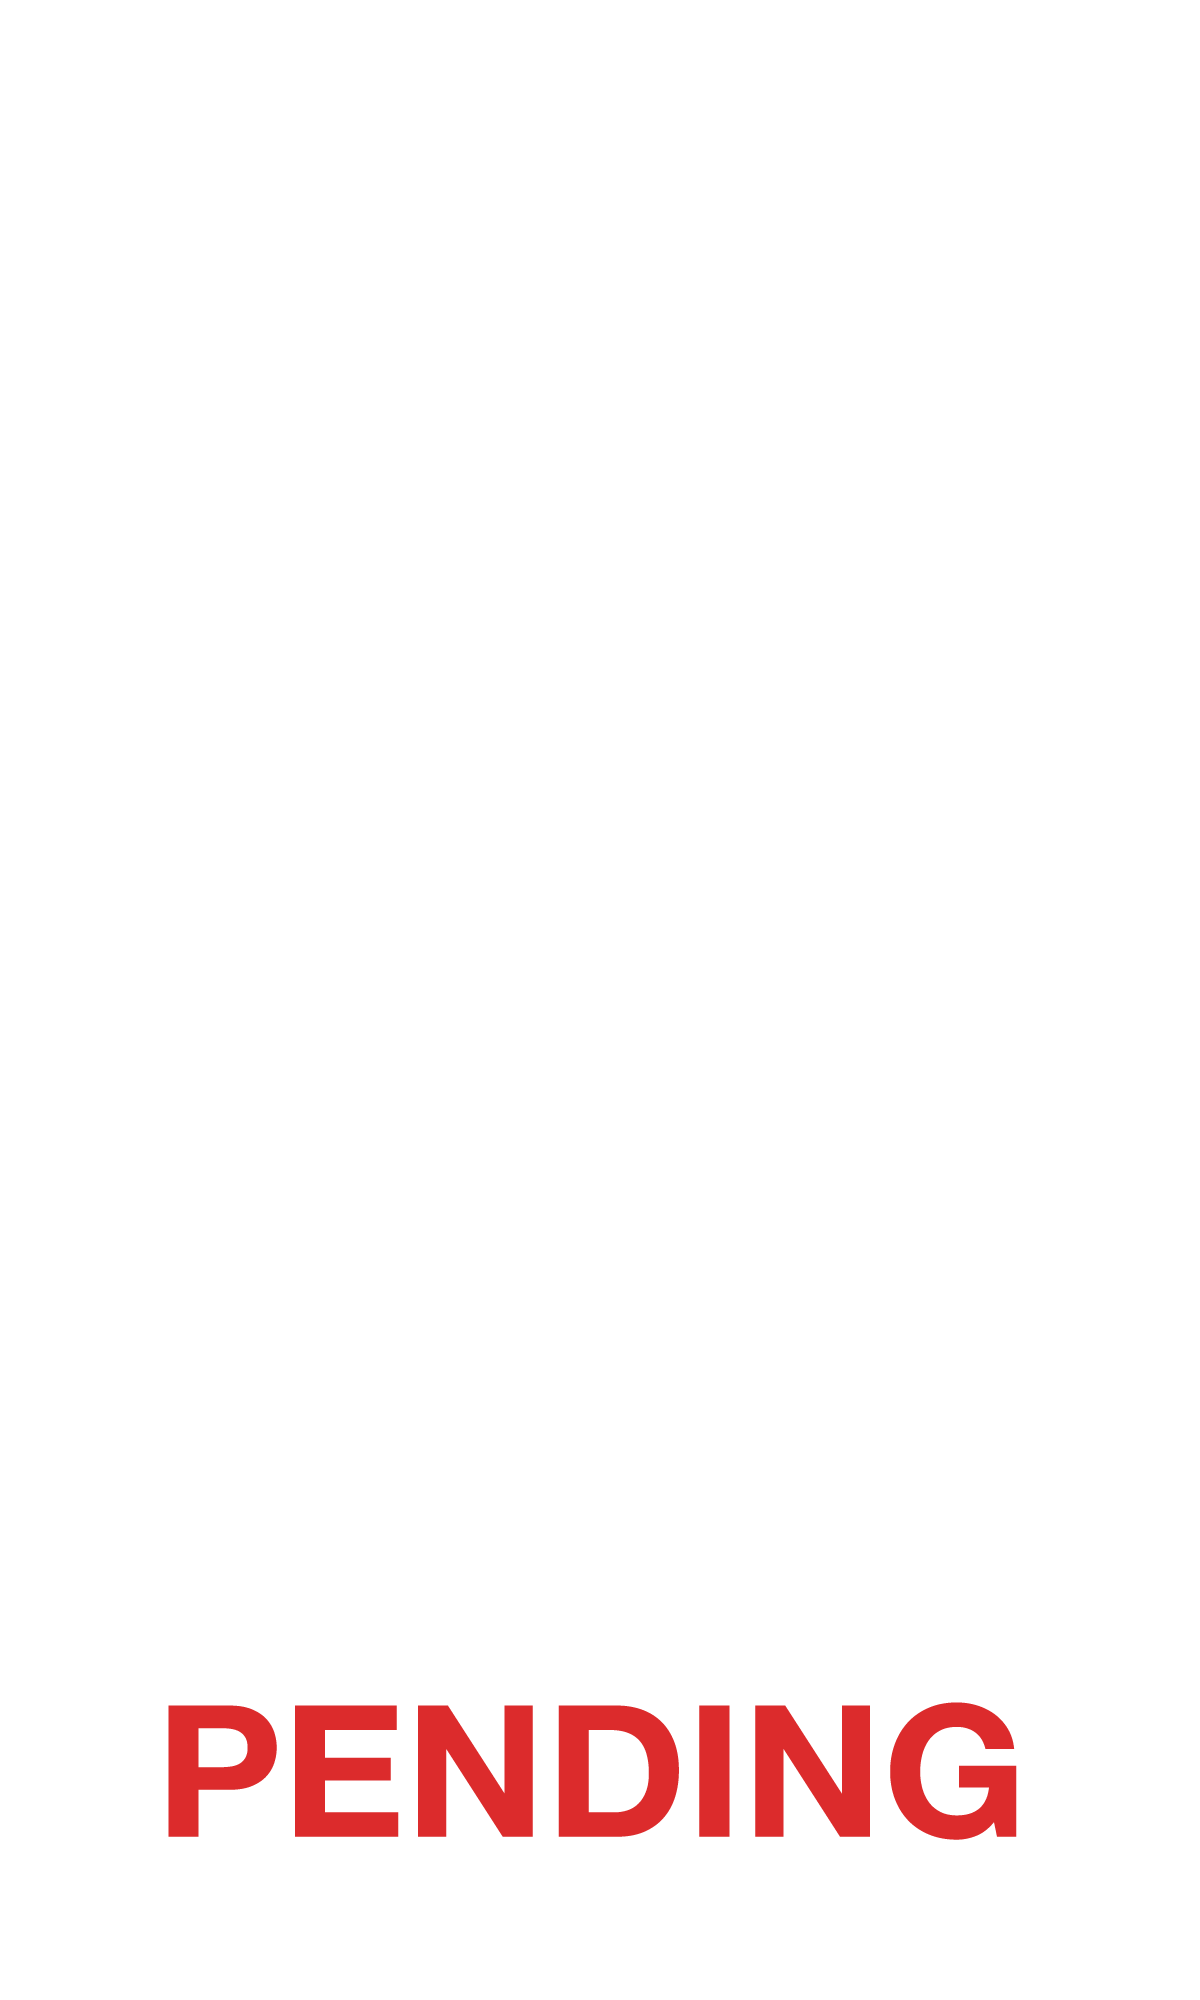 certified_b_corporation_pending_white-lg.png